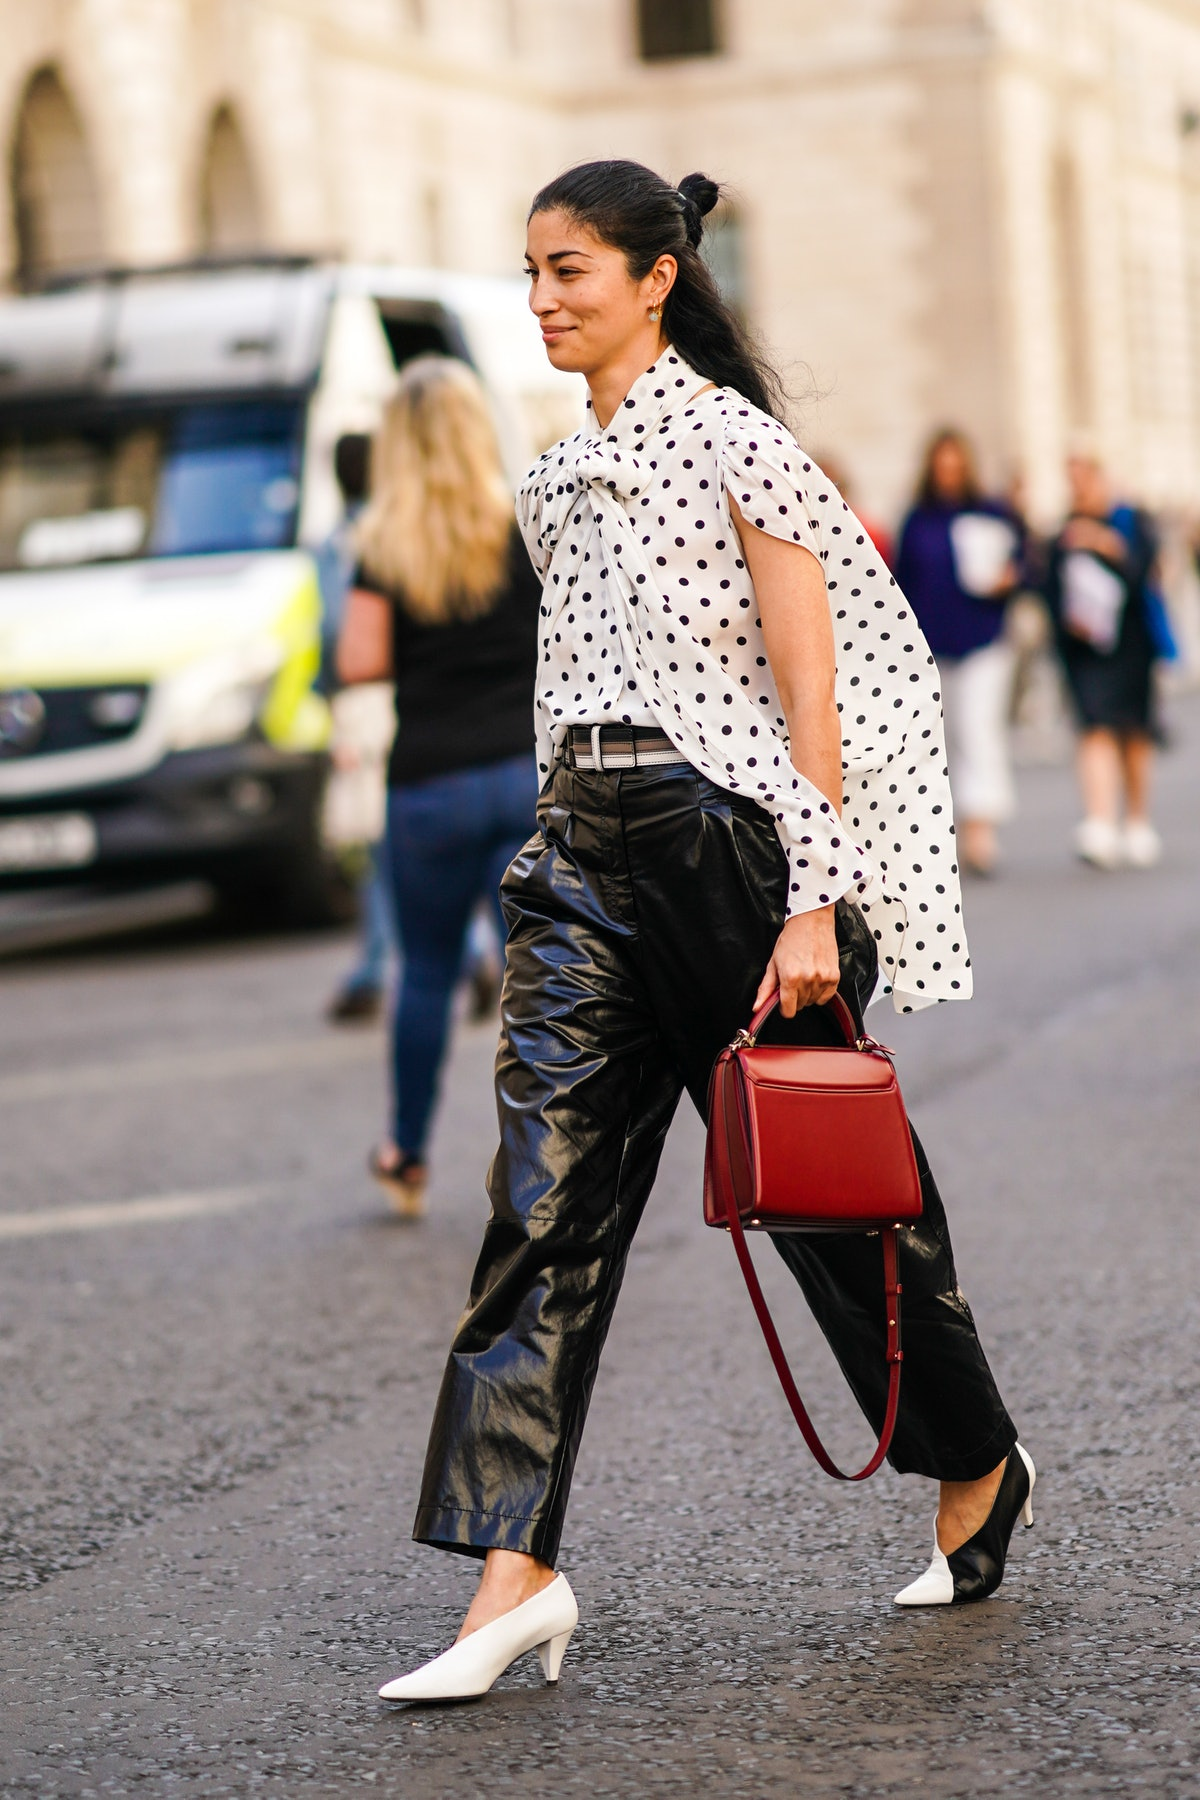 The best online sample sales offer special access to savings on top fashion brands.